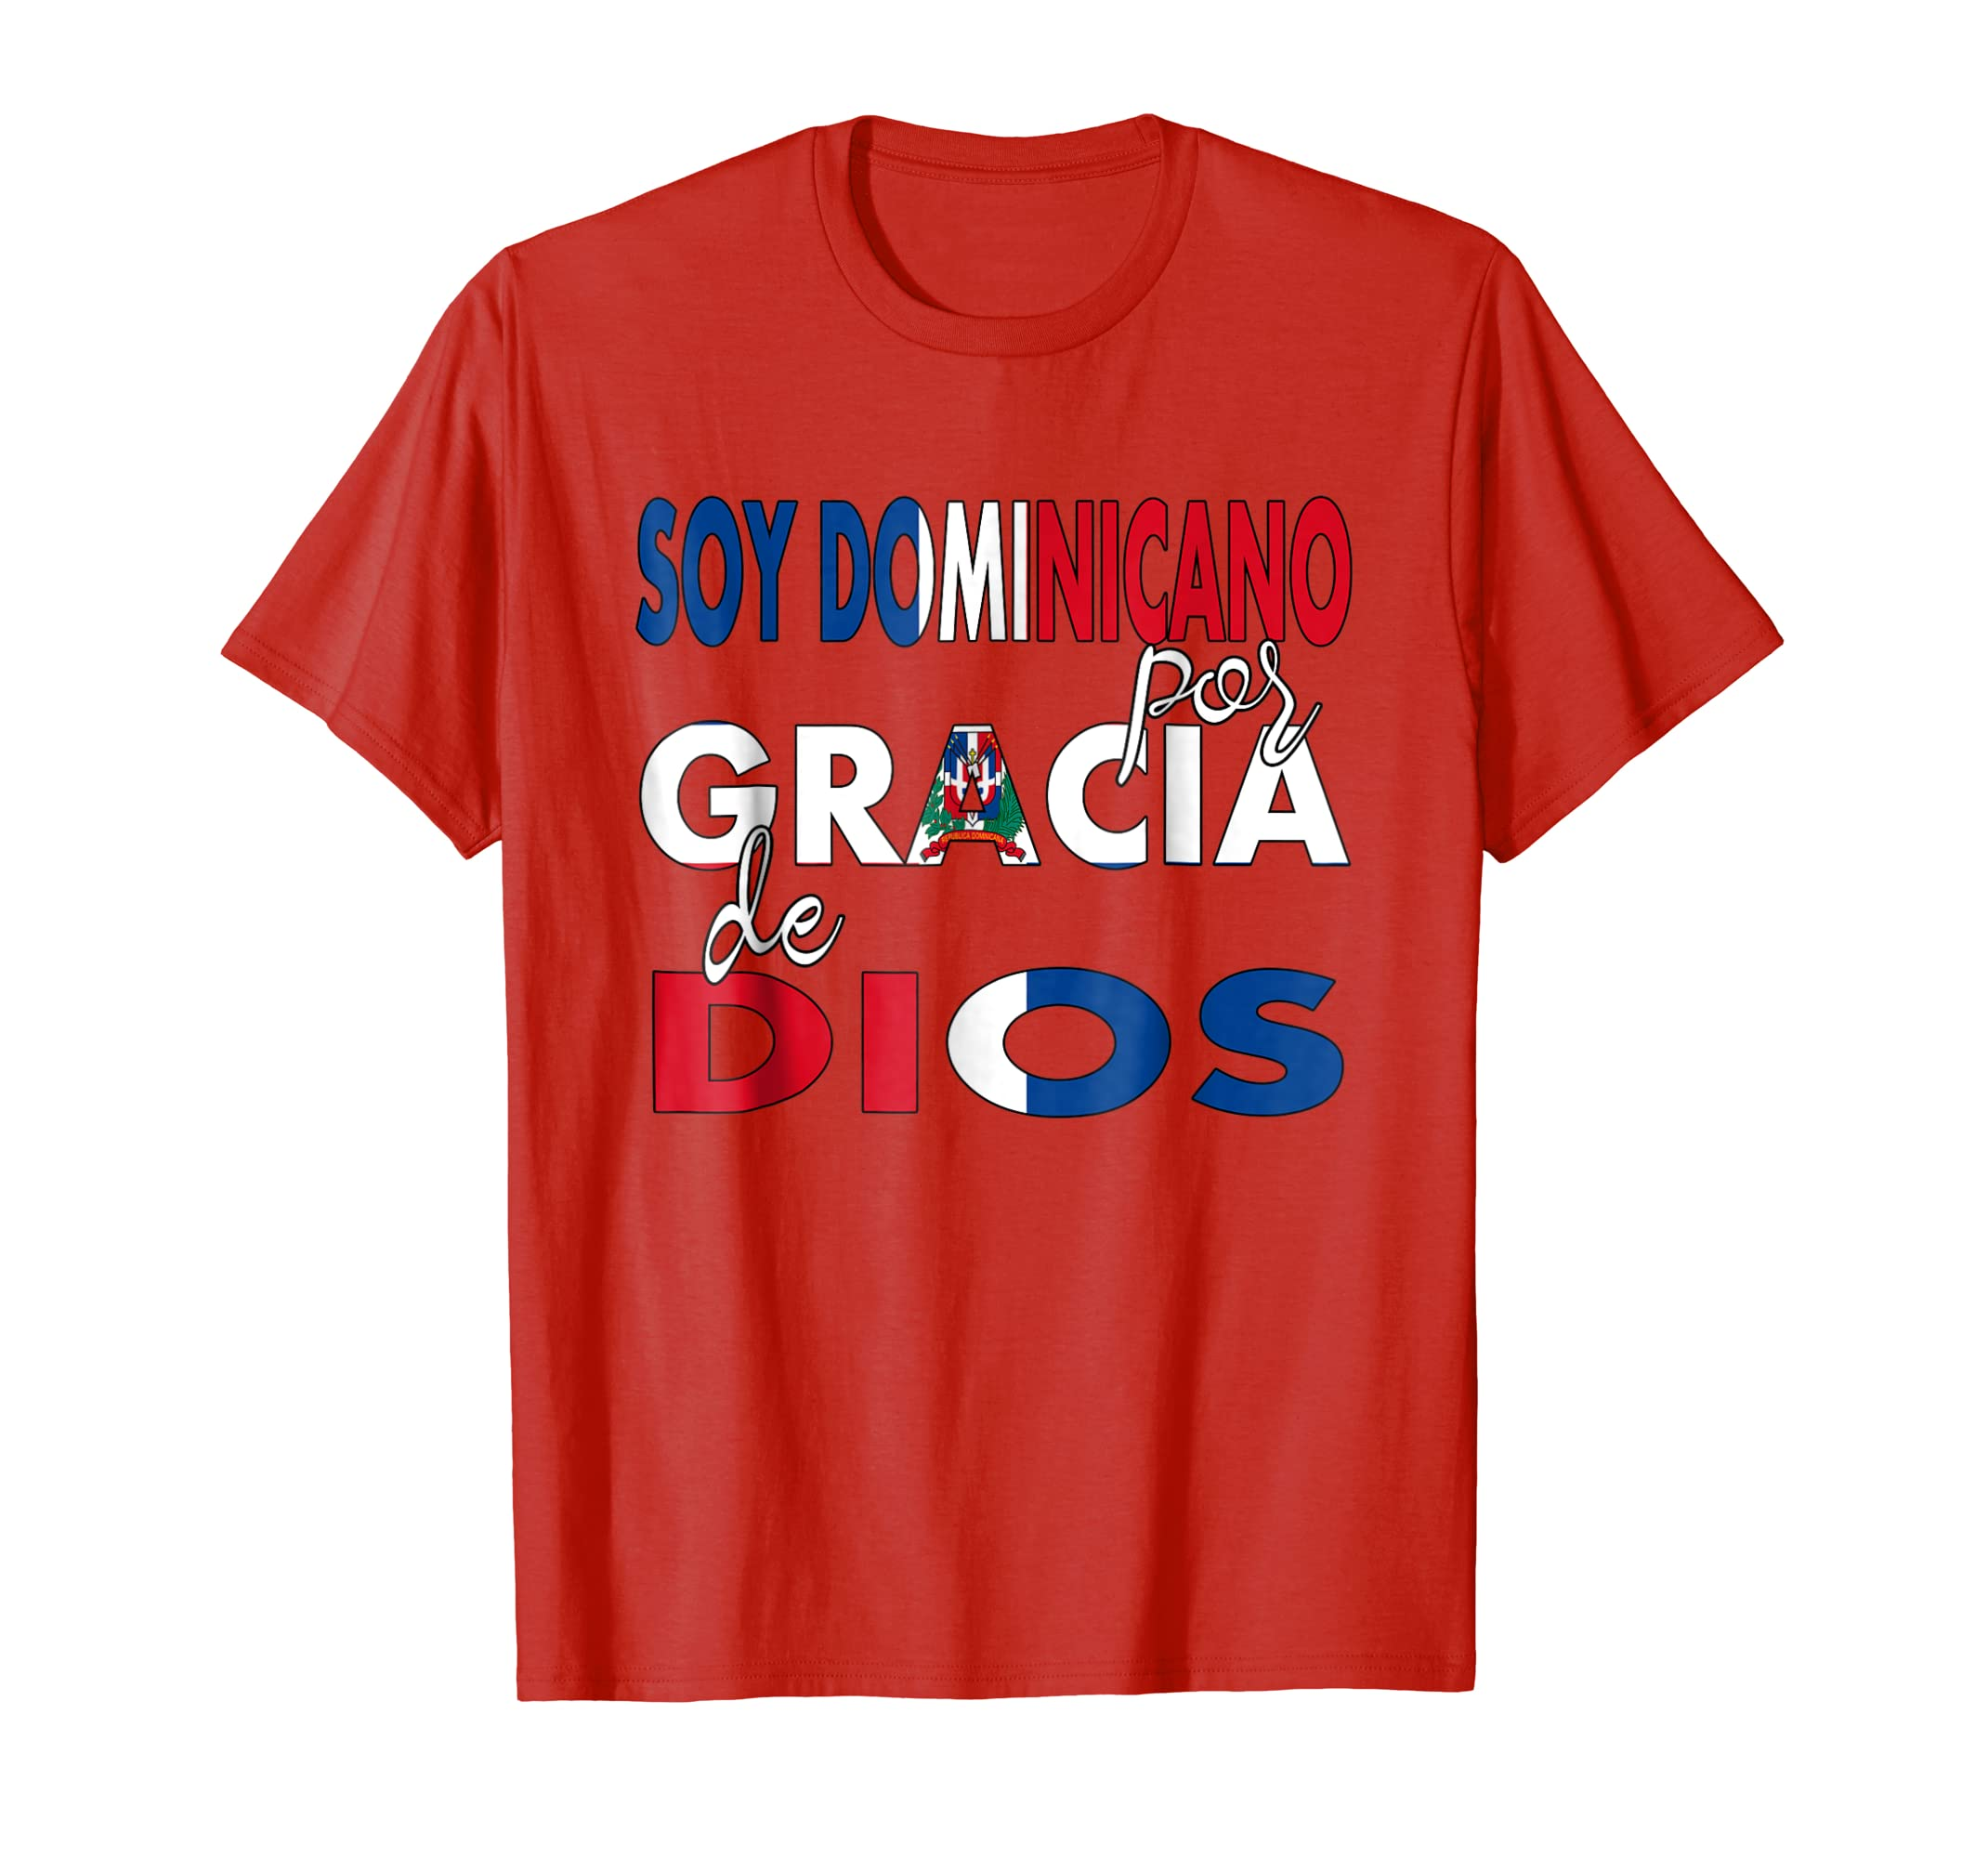 Amazon.com: Camiseta Republica Dominicana Camiseta Religiosa En Espanol: Clothing